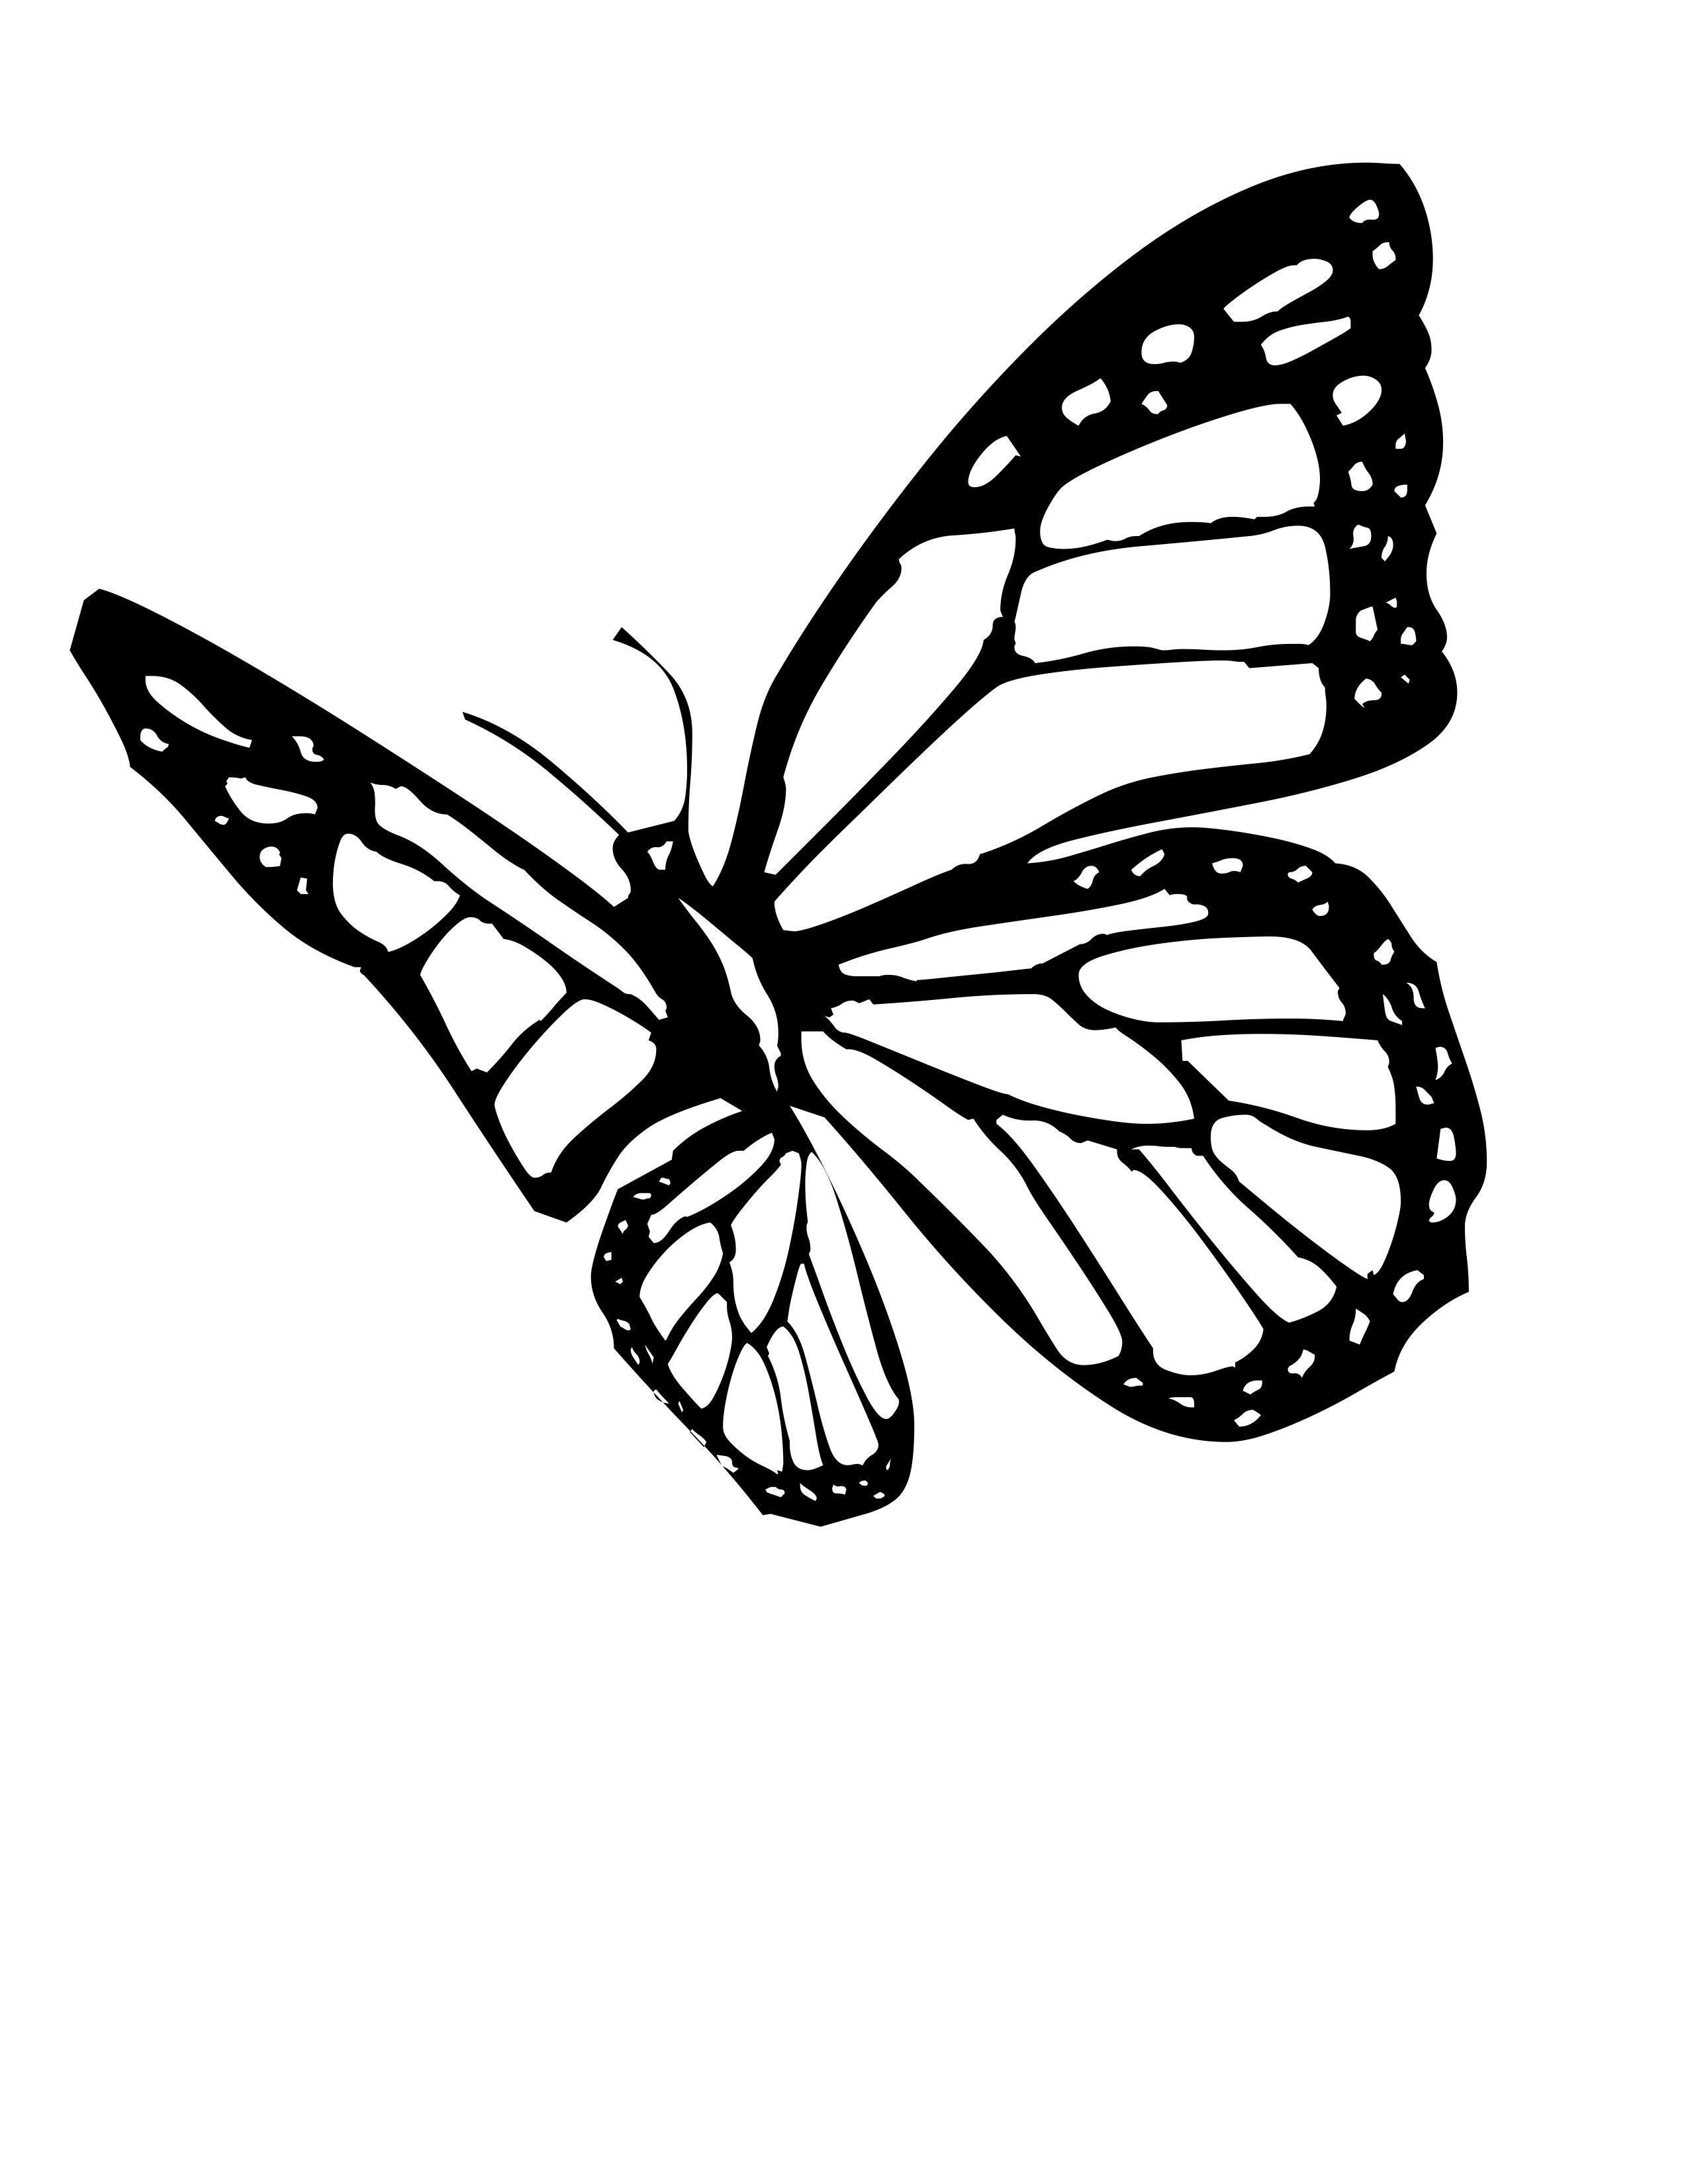 Butterfly coloring pages on pinterest - Monarch Butterflies Coloring Page Monarch Butterfly